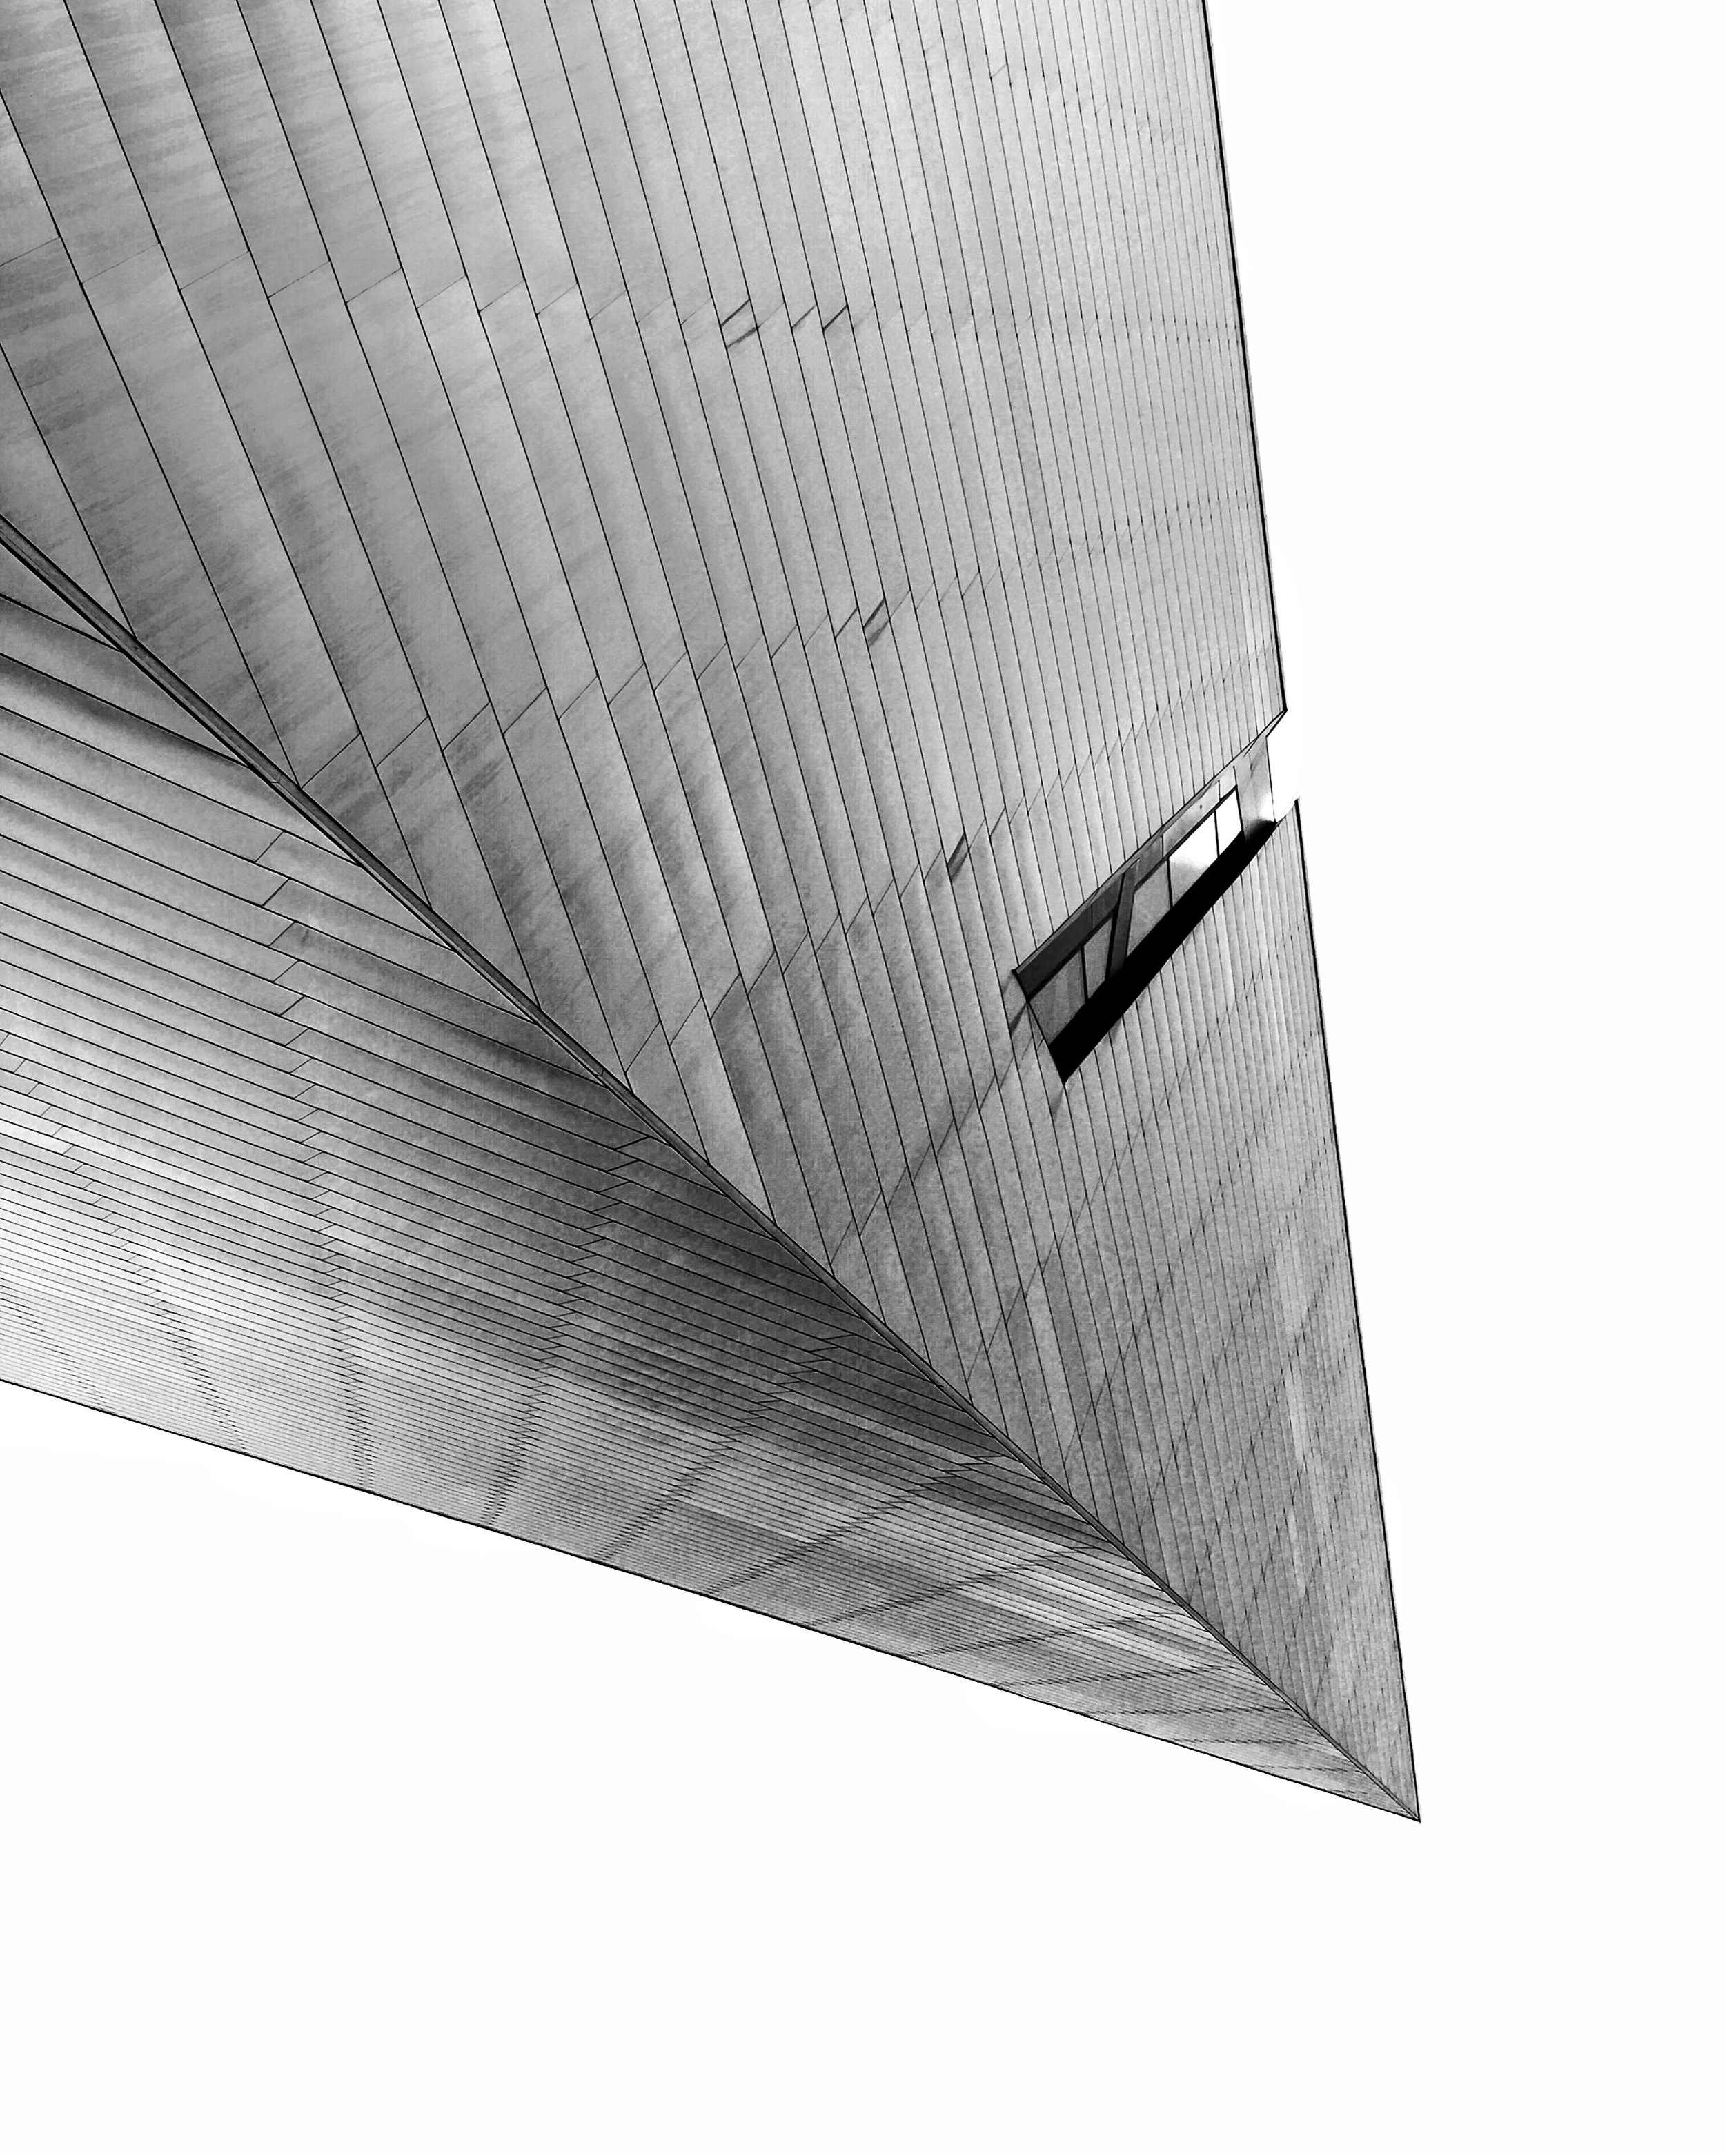 Denver Art Museum by Studio Libeskind. iPhone 6S photo © Miller Taylor